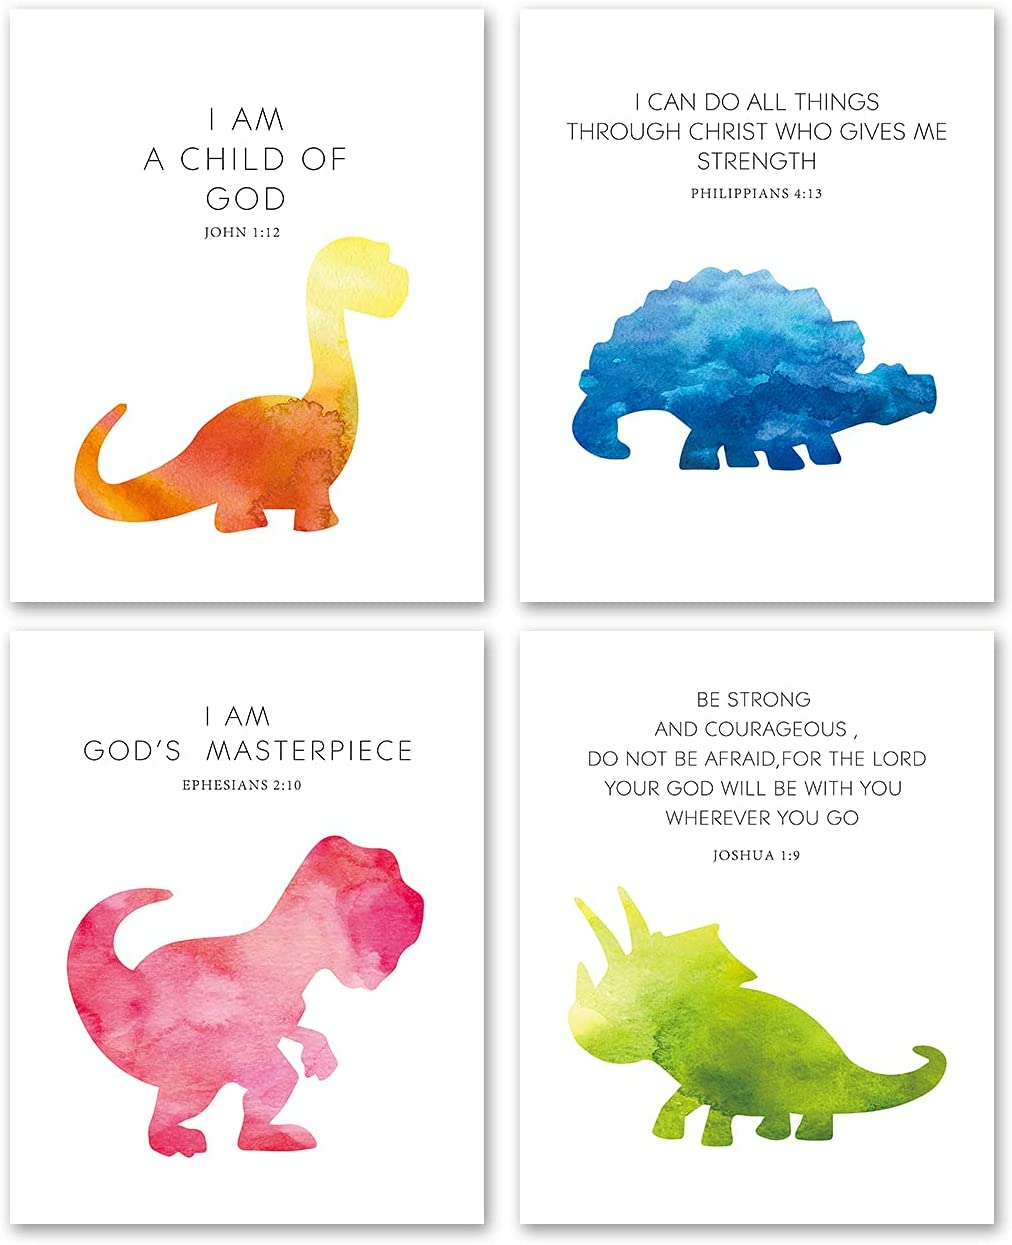 Christian Quotes Bible Scripture Quote Dinosaur Watercolor Wall Art Prints Set of 4 8x10 Unframed - Dinosaur Motivational Saying Wall Decor for Kids Teens Boys Room Bedroom Nursery